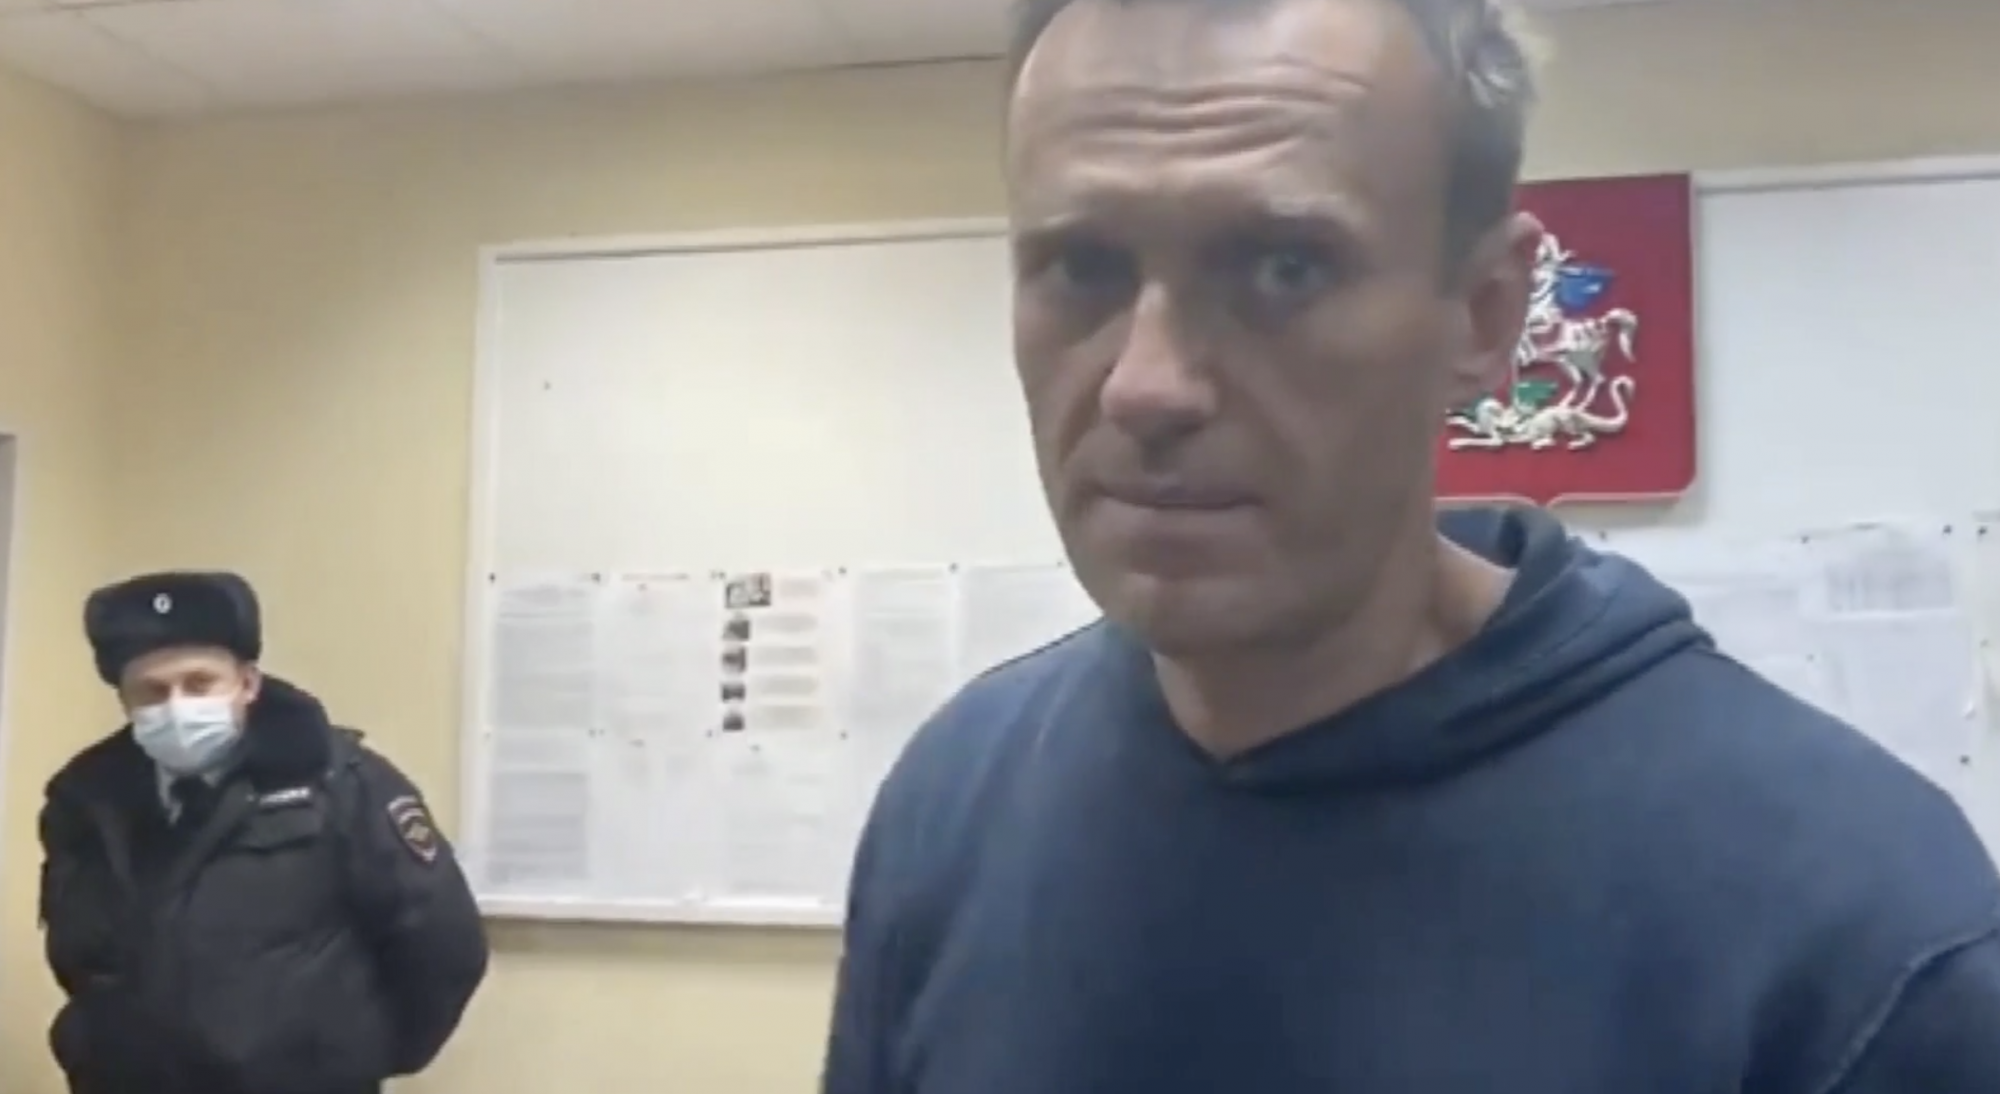 Russia opposition activist Alexei Navalny jailed for 30 days - channel 4